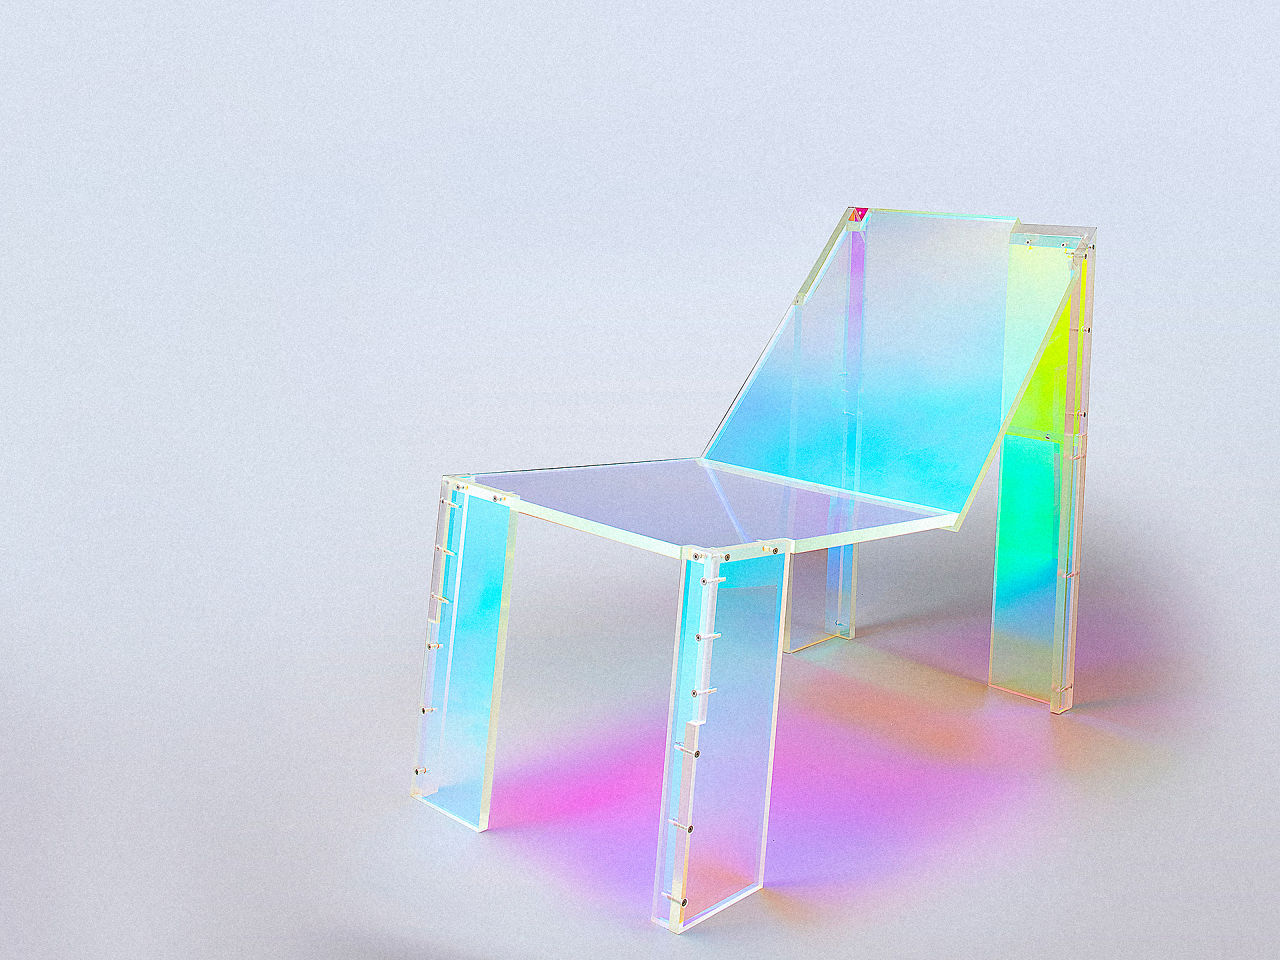 This Trippy Chair Is An Art Piece Inspired By 90s House Music